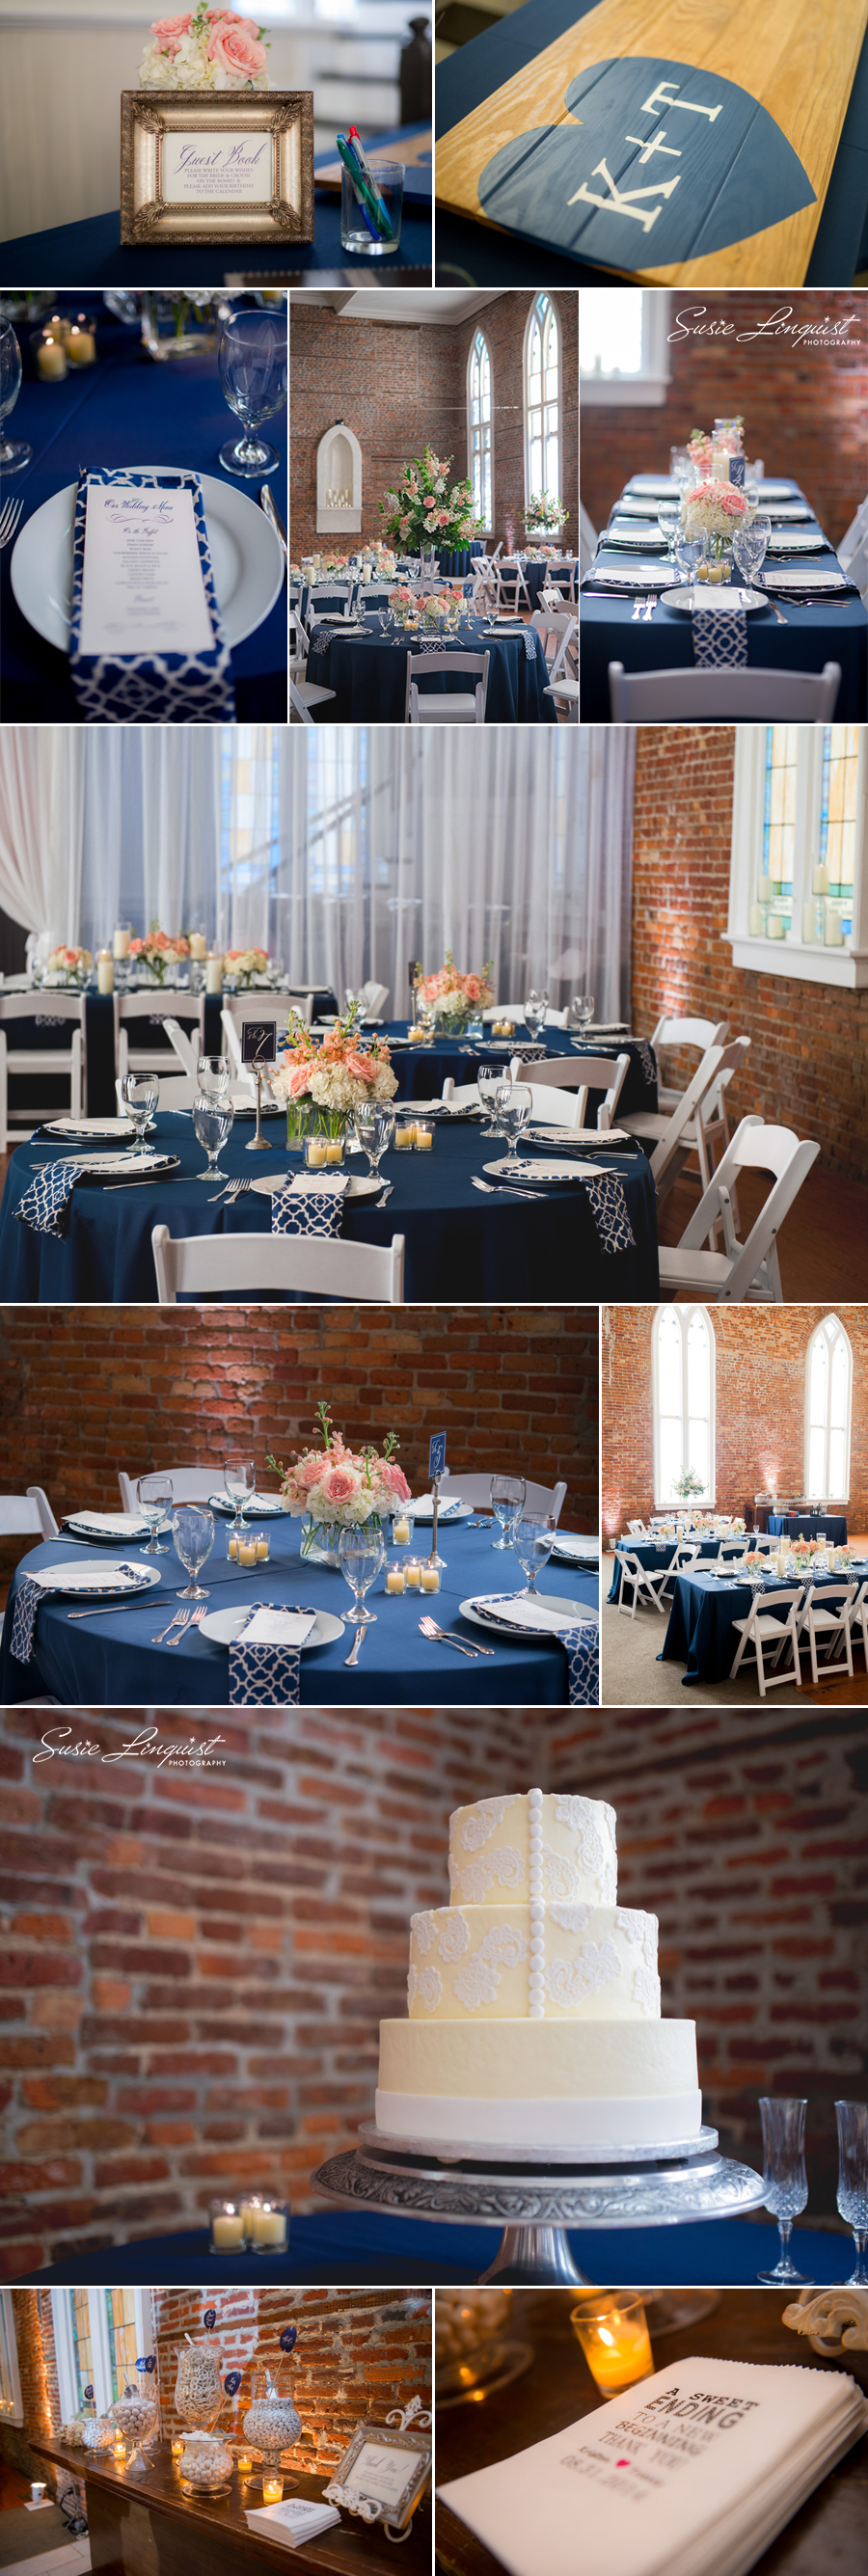 Saint Thomas downtown wilmington nc wedding